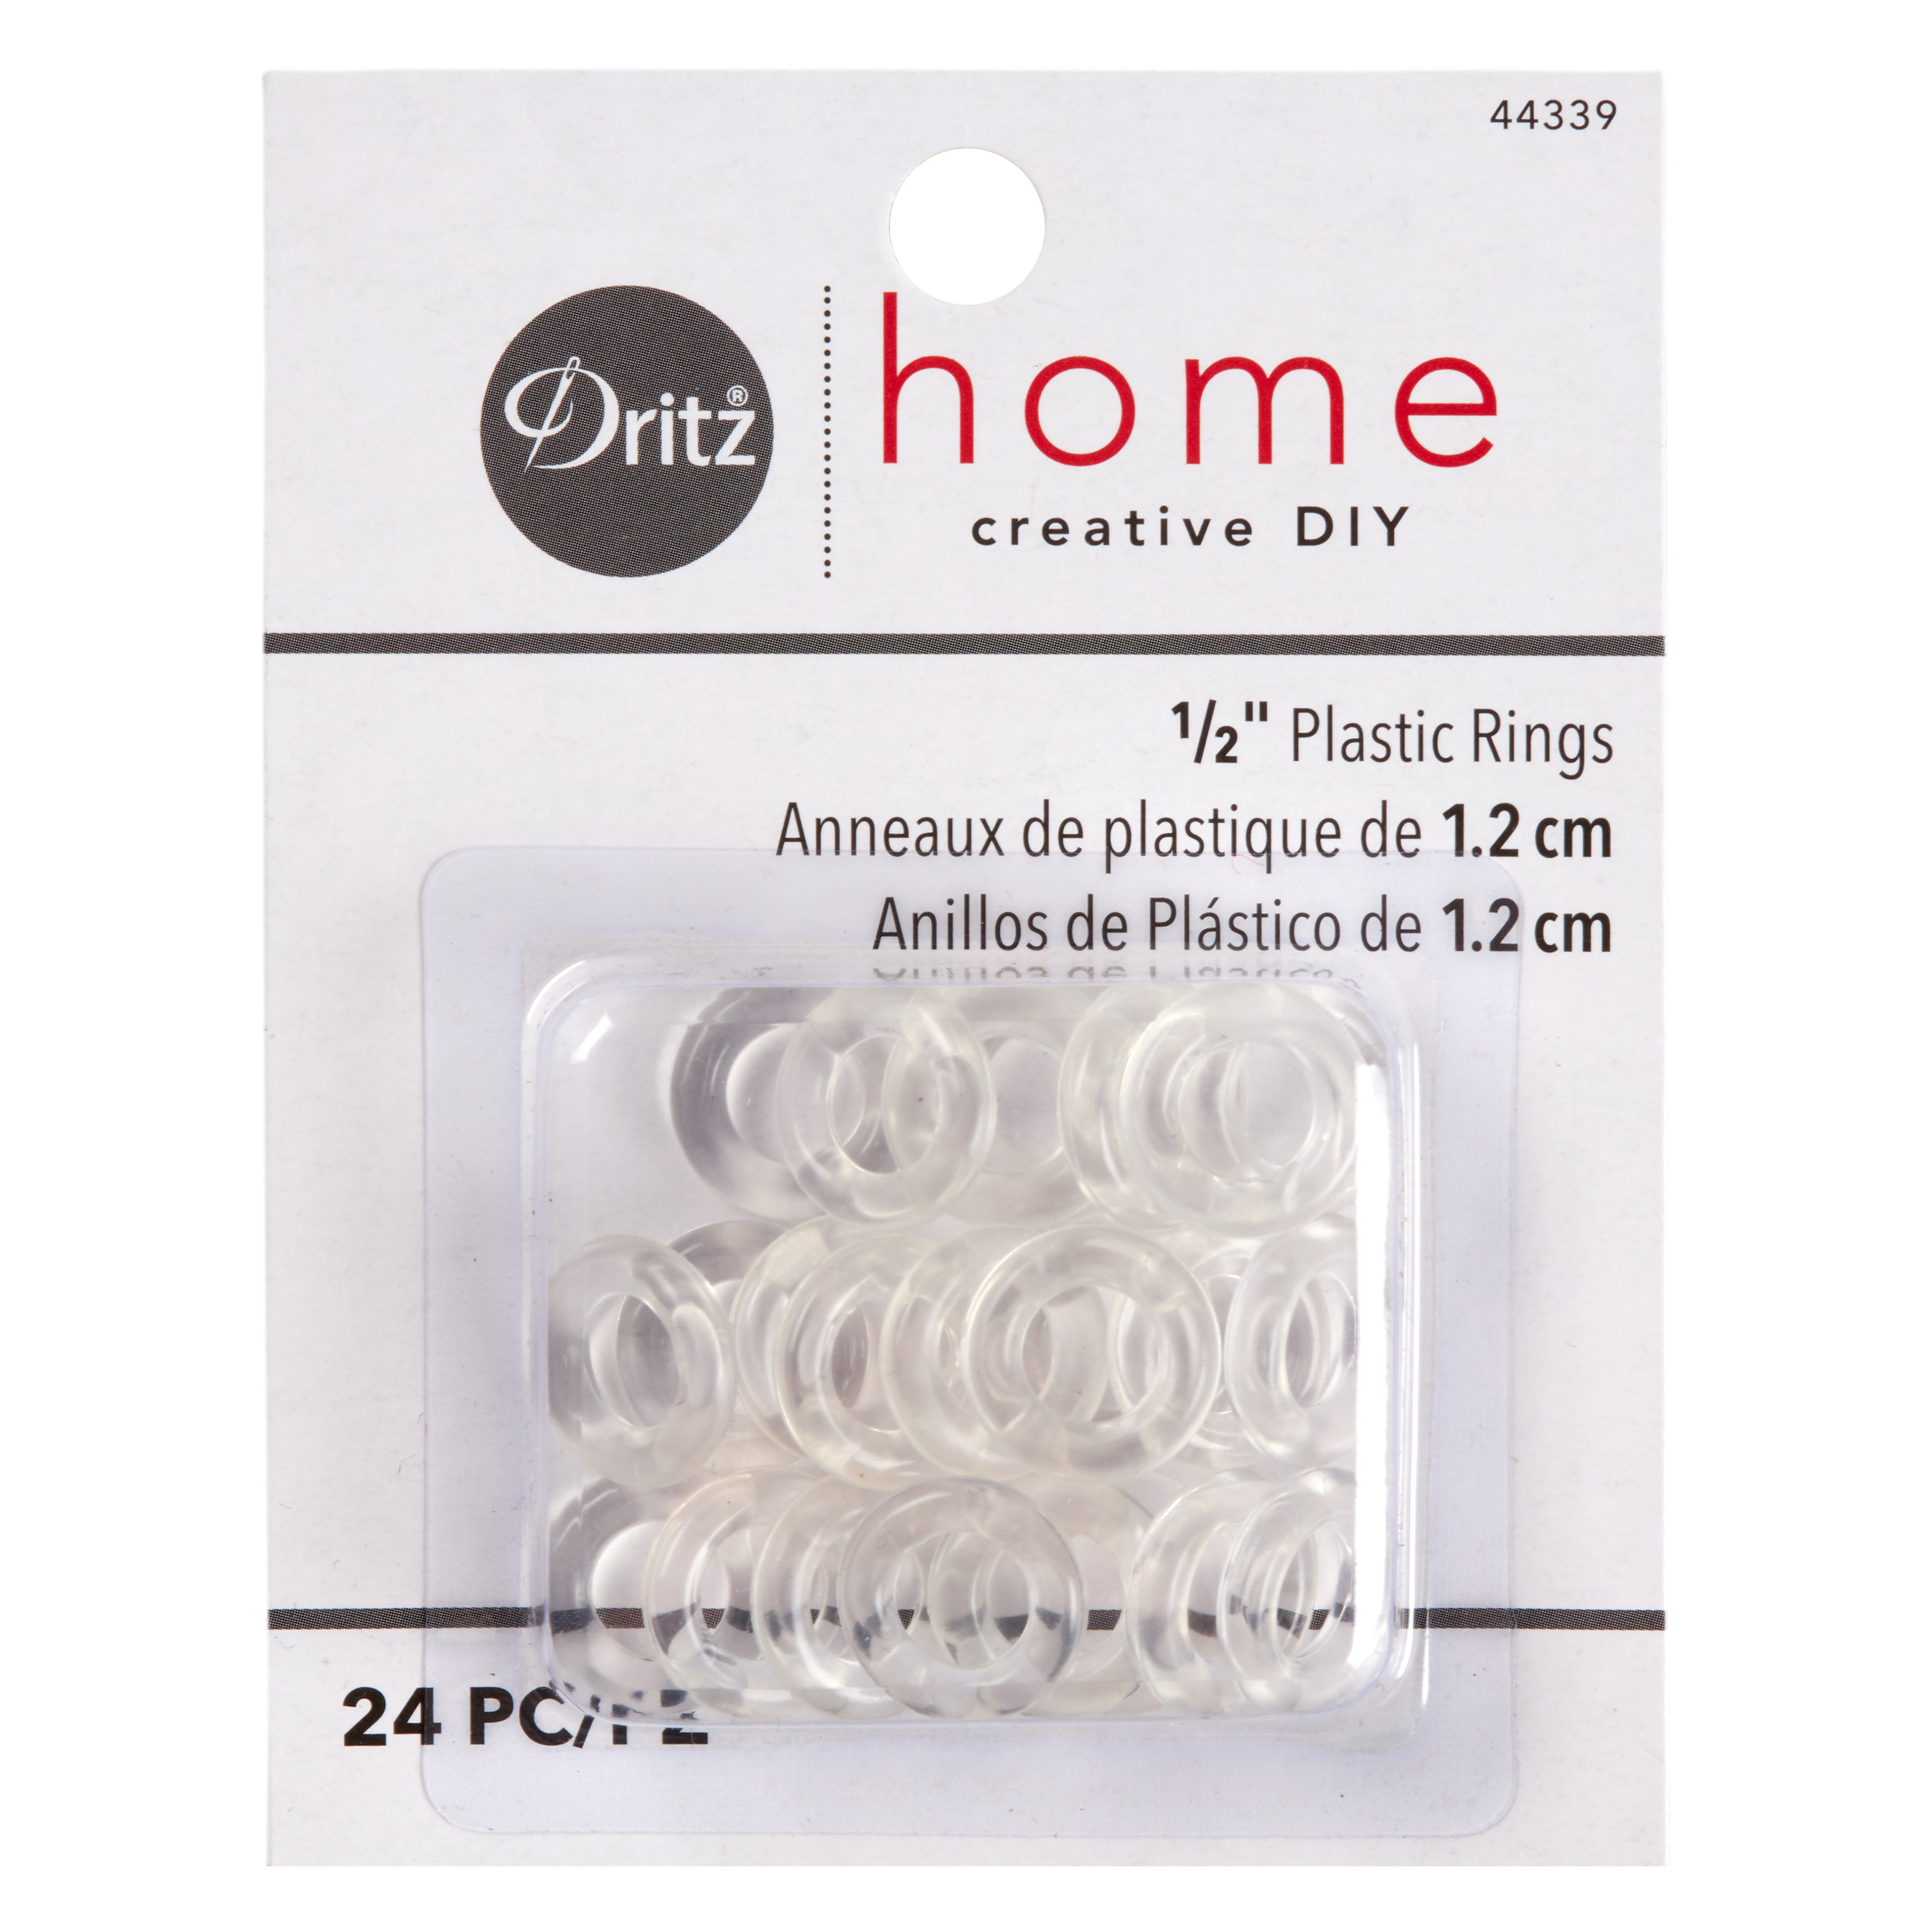 Dritz Home 1/2'' Plastic Rings 24/Pkg-Clear by Notions Marketing in USA